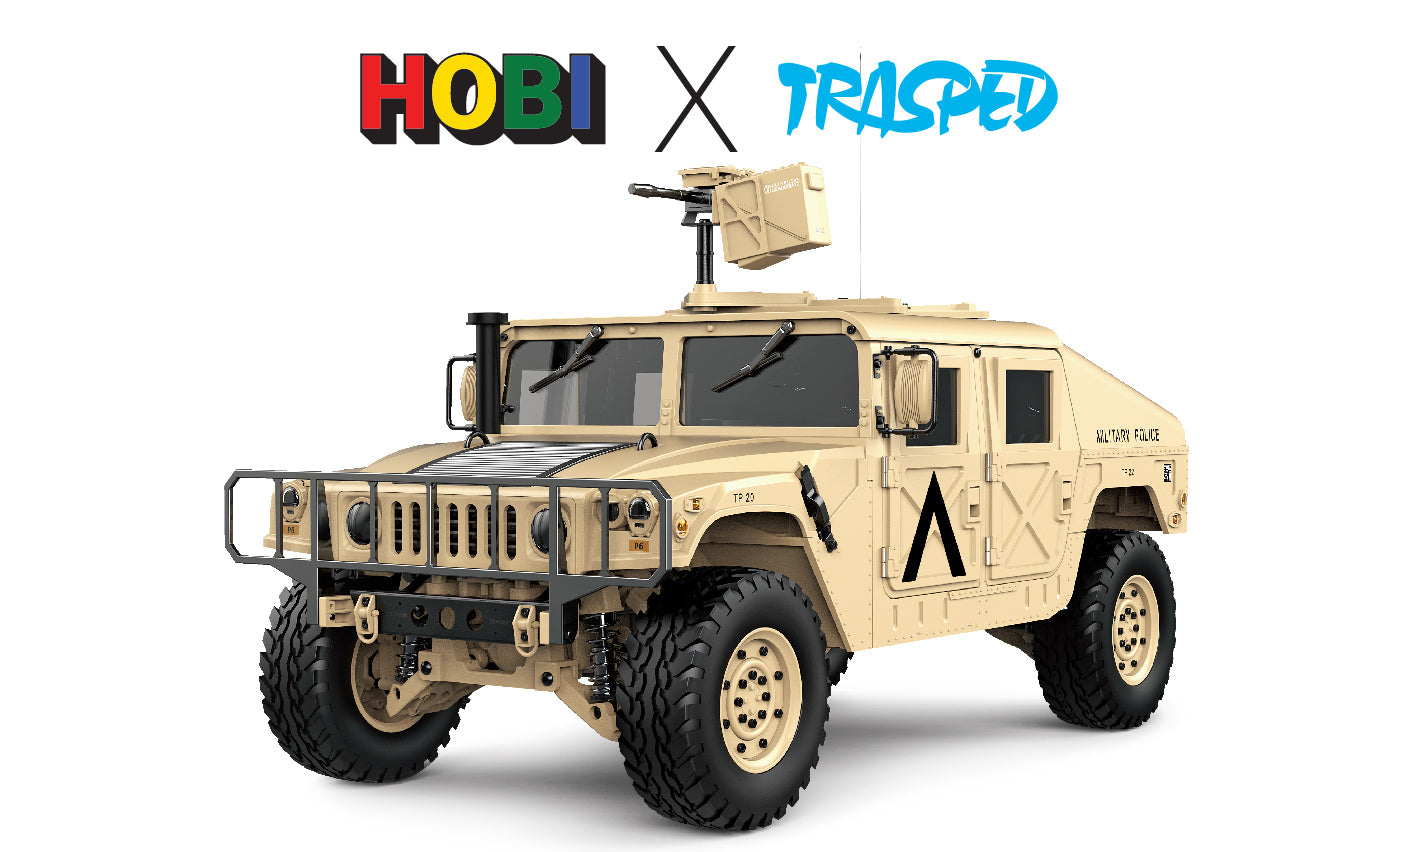 TRASPED HG408 - HMMWV (Humvee) Scale 1/10 with Lights and Sound, Inc Battery and charger